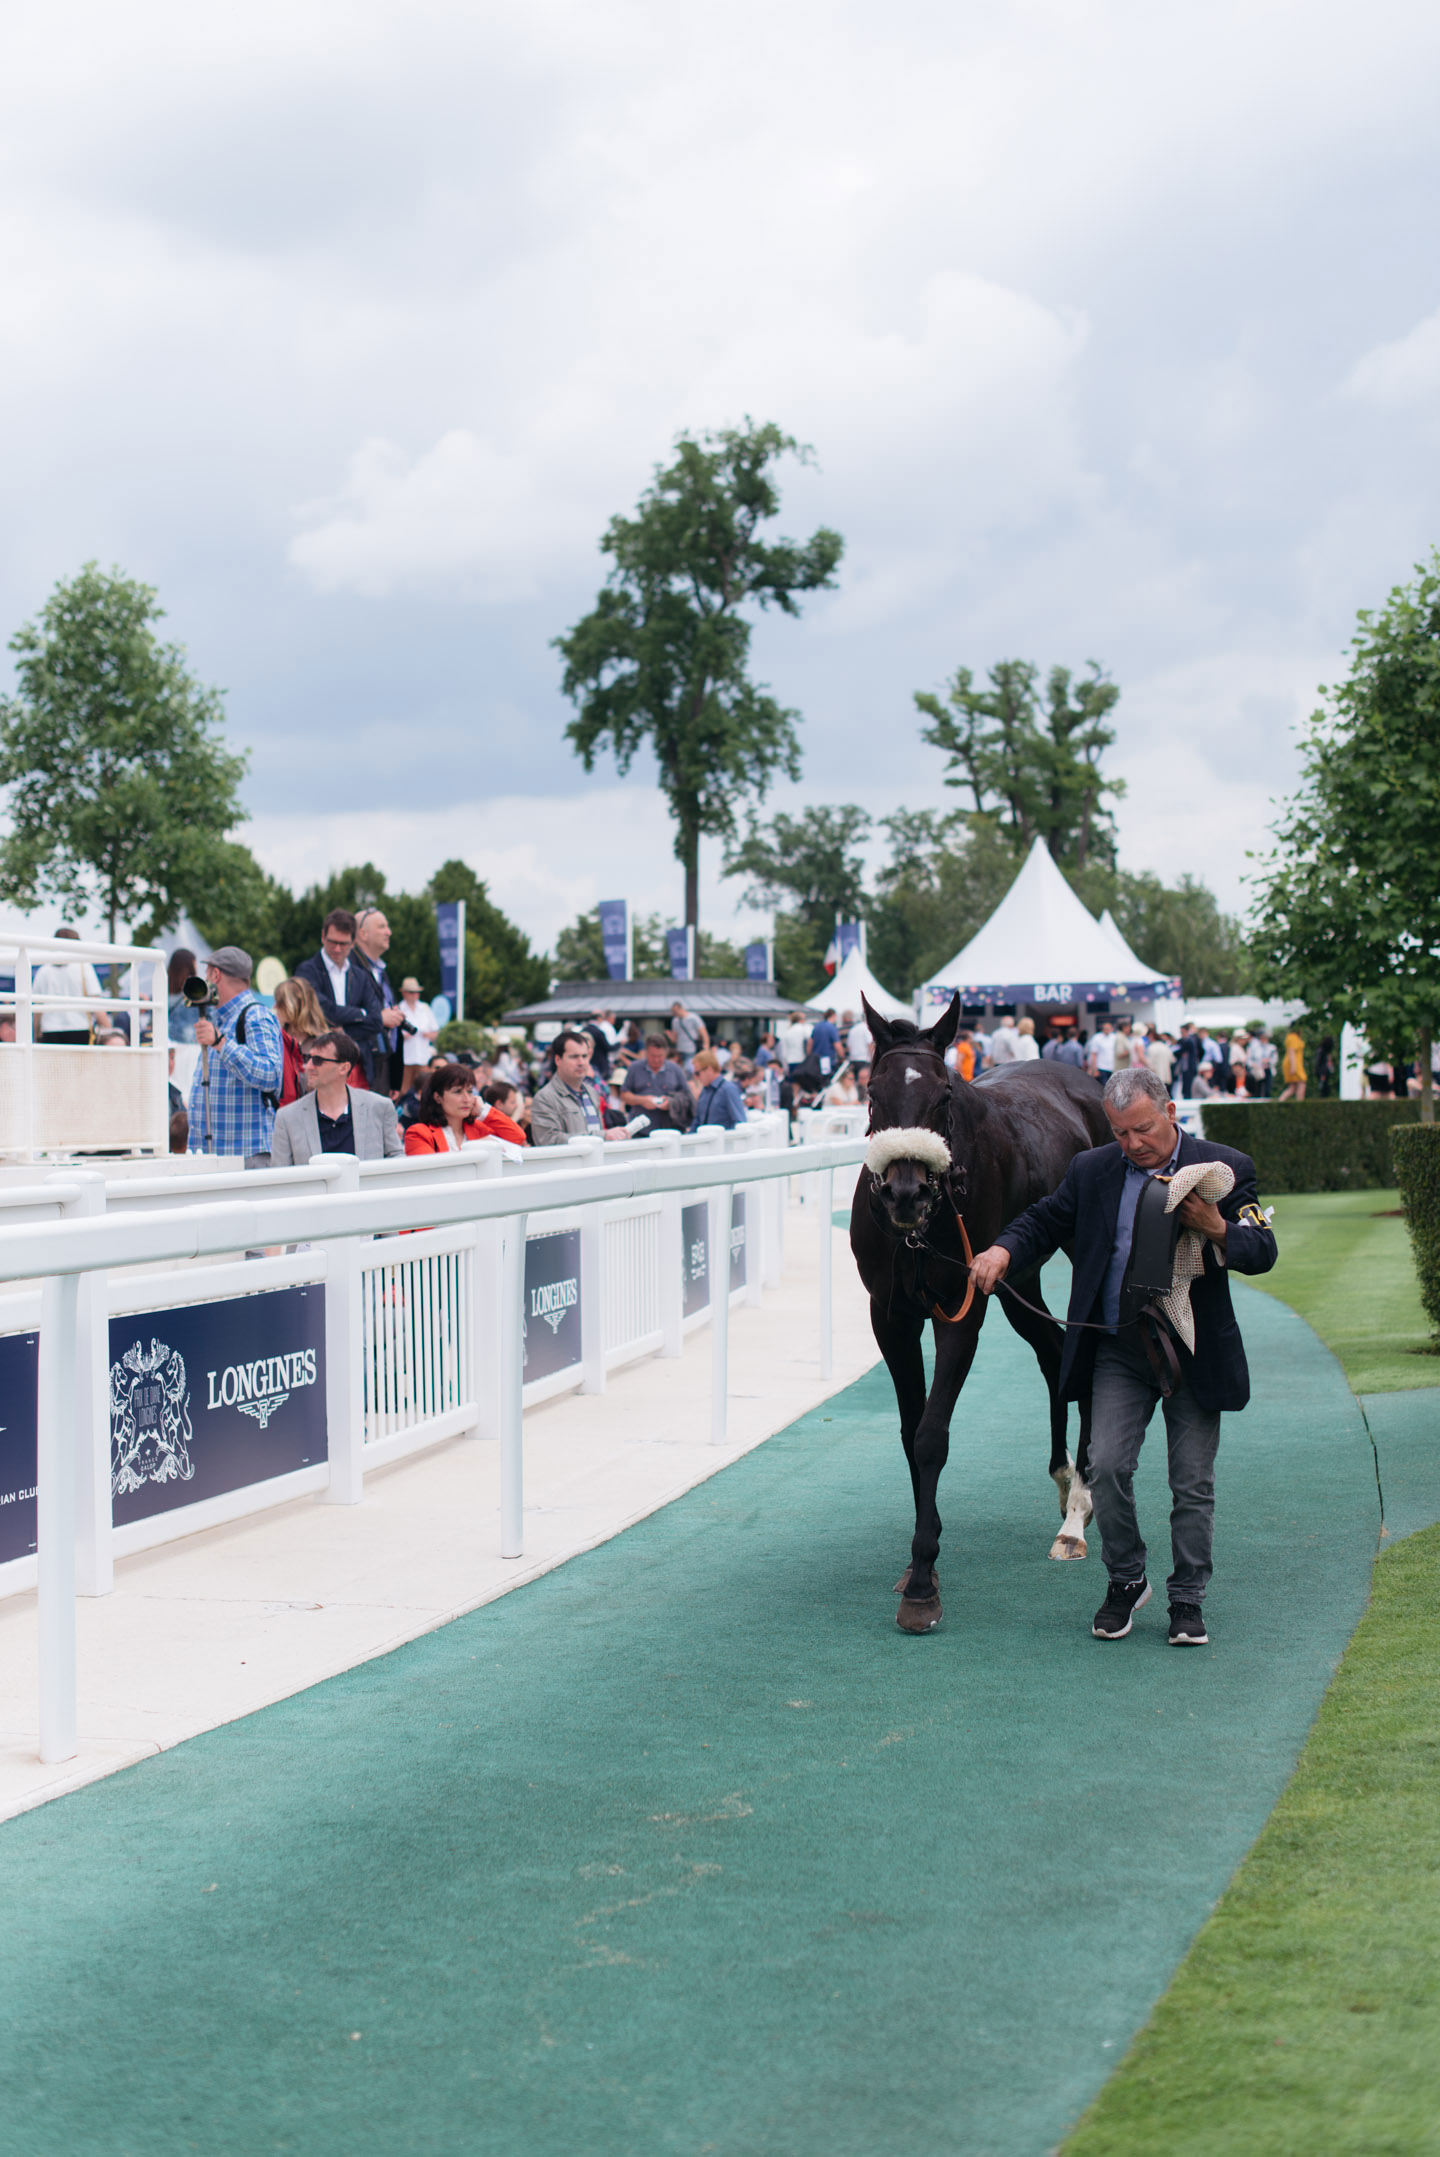 Blog-Mode-And-The-City-Lifestyle-Prix-de-Diane-Longines-2016-17